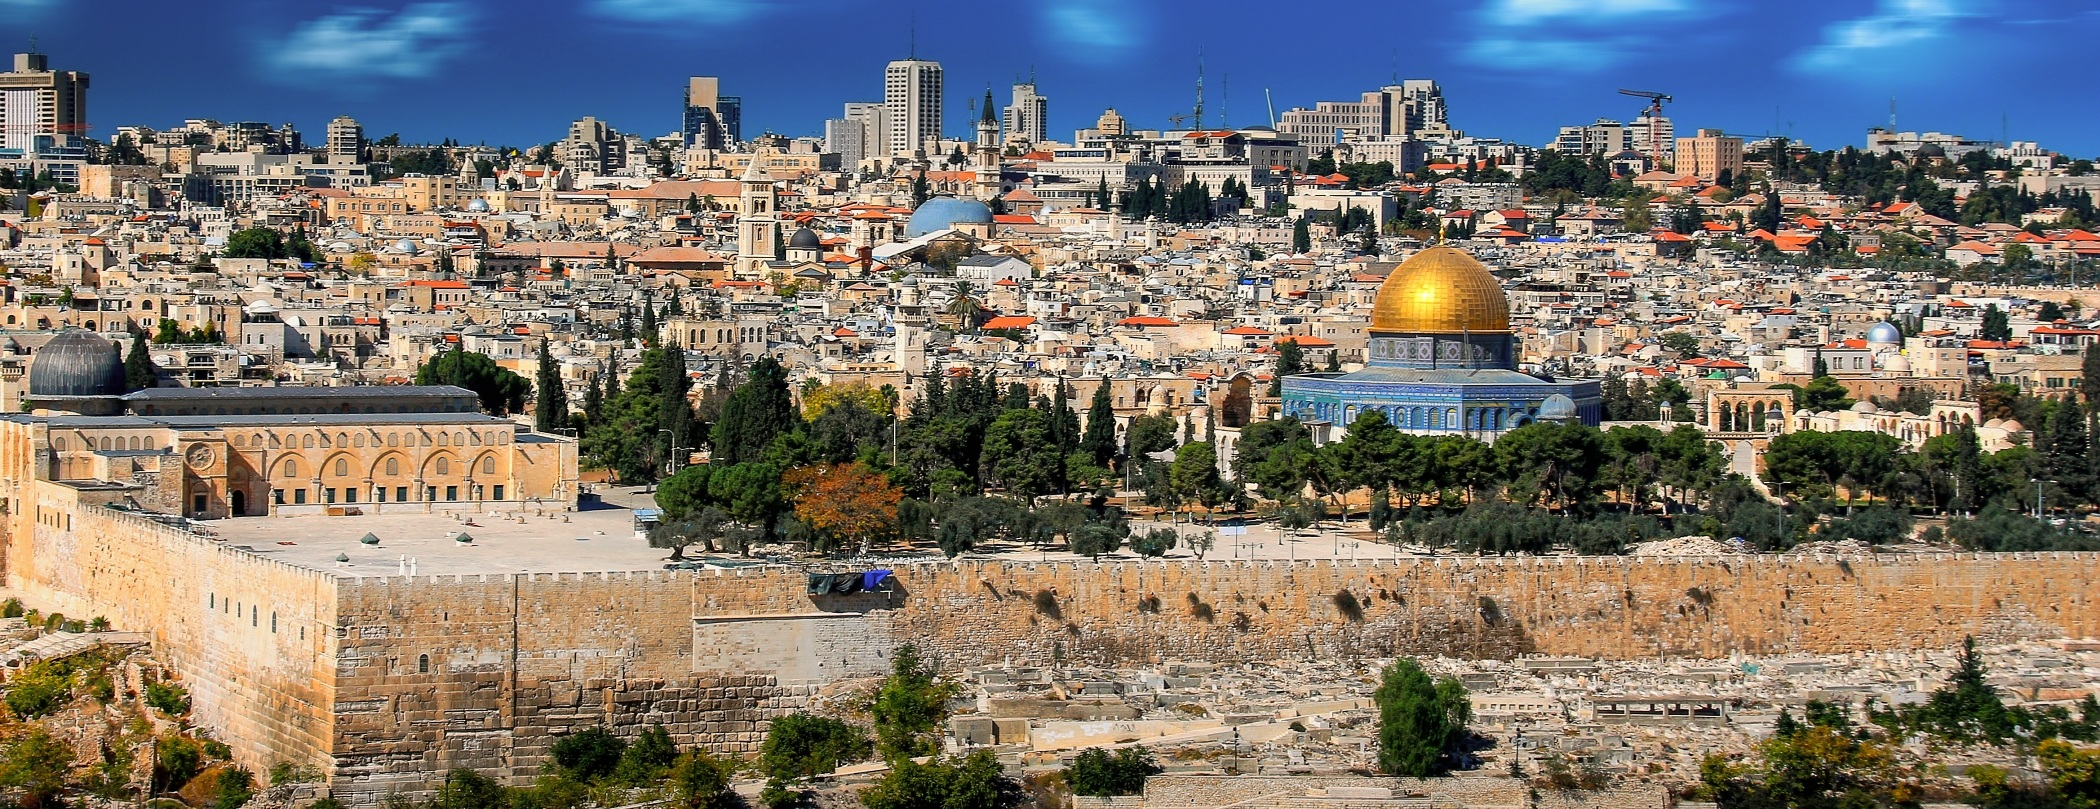 Israel has won the award of 'Best Heritage Destination' this year